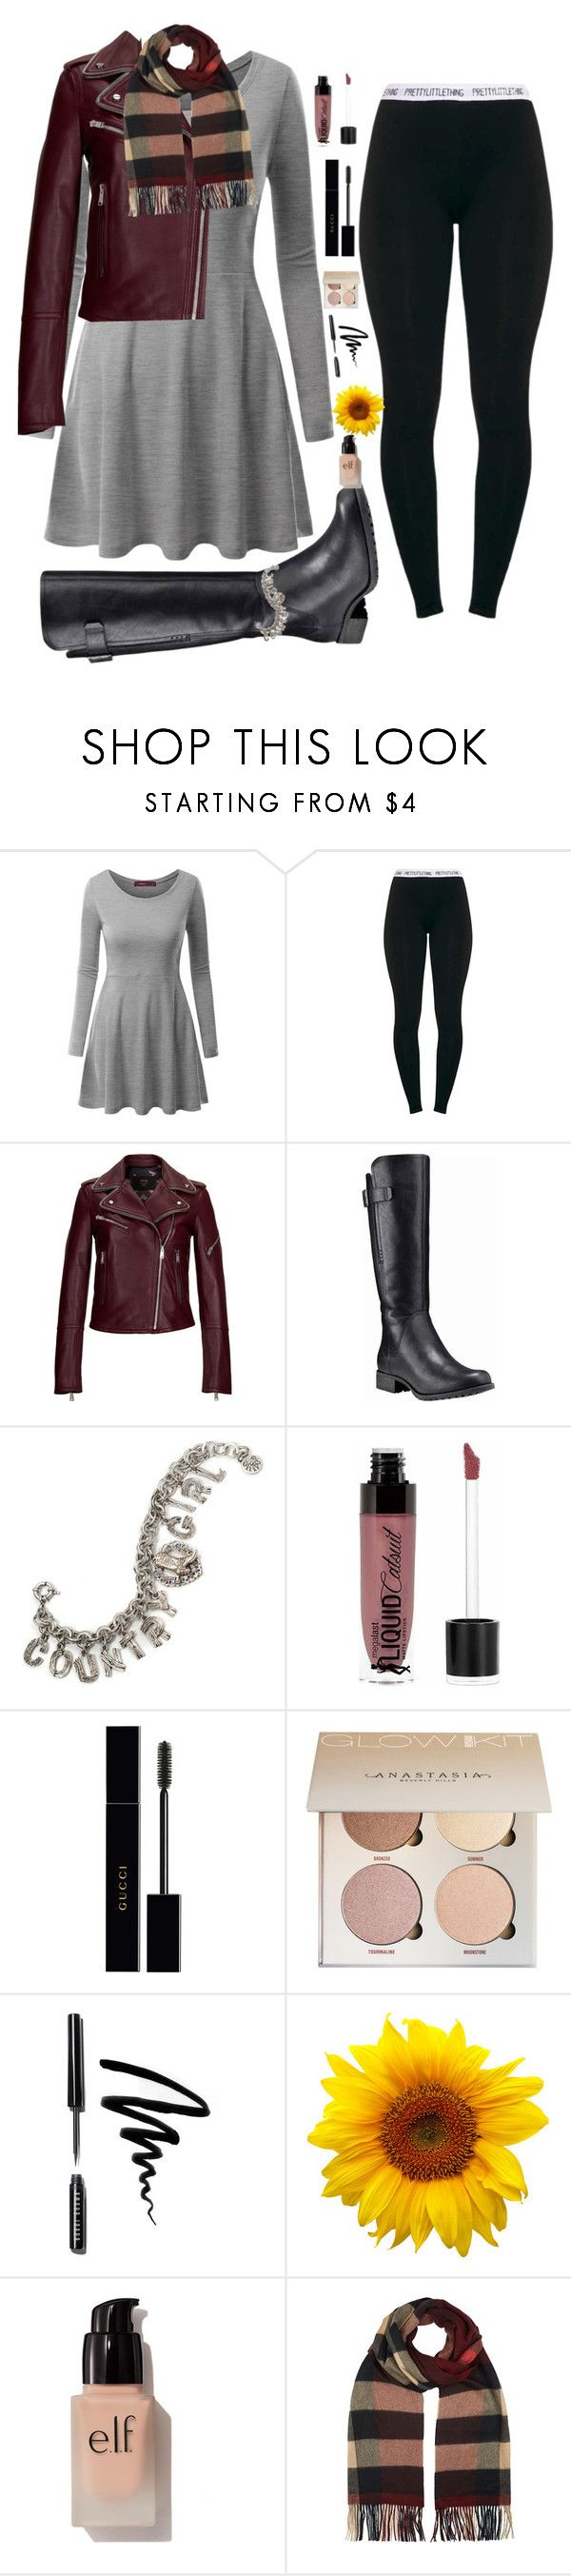 """How to dress modestly for Winter"" by piano-fingers-88 ❤ liked on Polyvore featuring Doublju, MCM, Timberland, Sweet Romance, Wet n Wild, Gucci, Bobbi Brown Cosmetics, e.l.f. and Burberry"